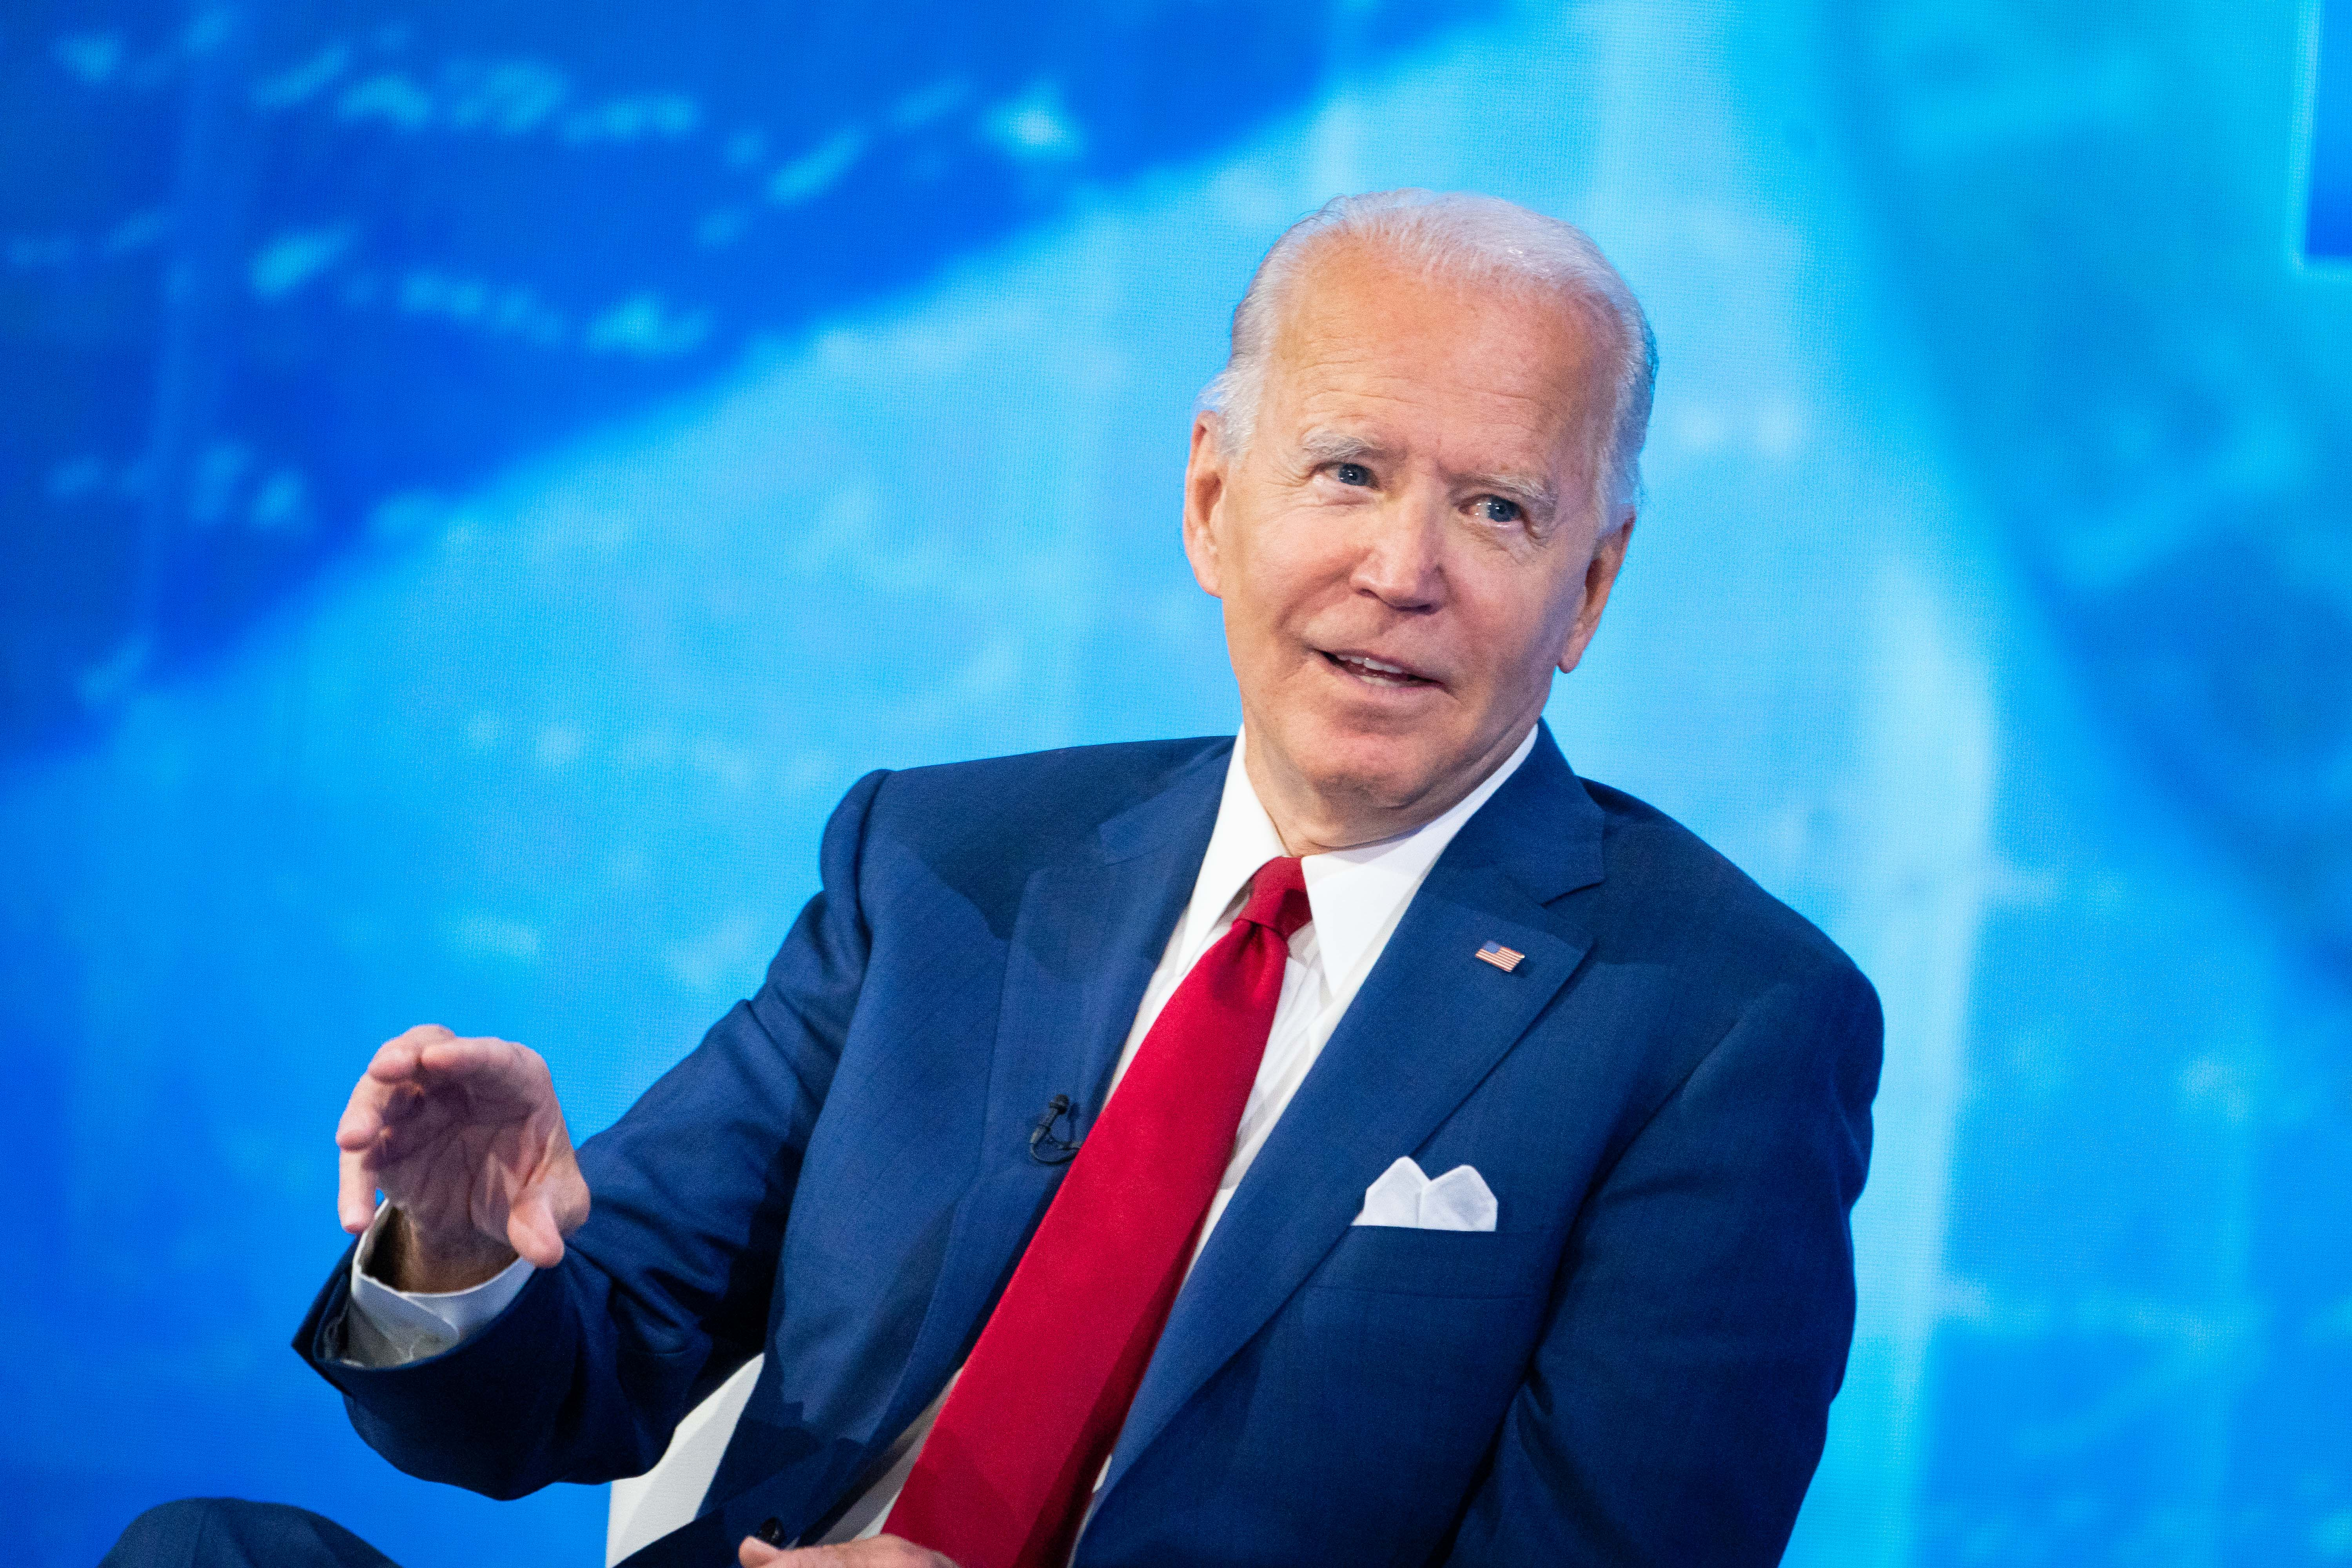 Taxes May Increase to Over 58 percent for NY and NJ Residents Under Joe Biden